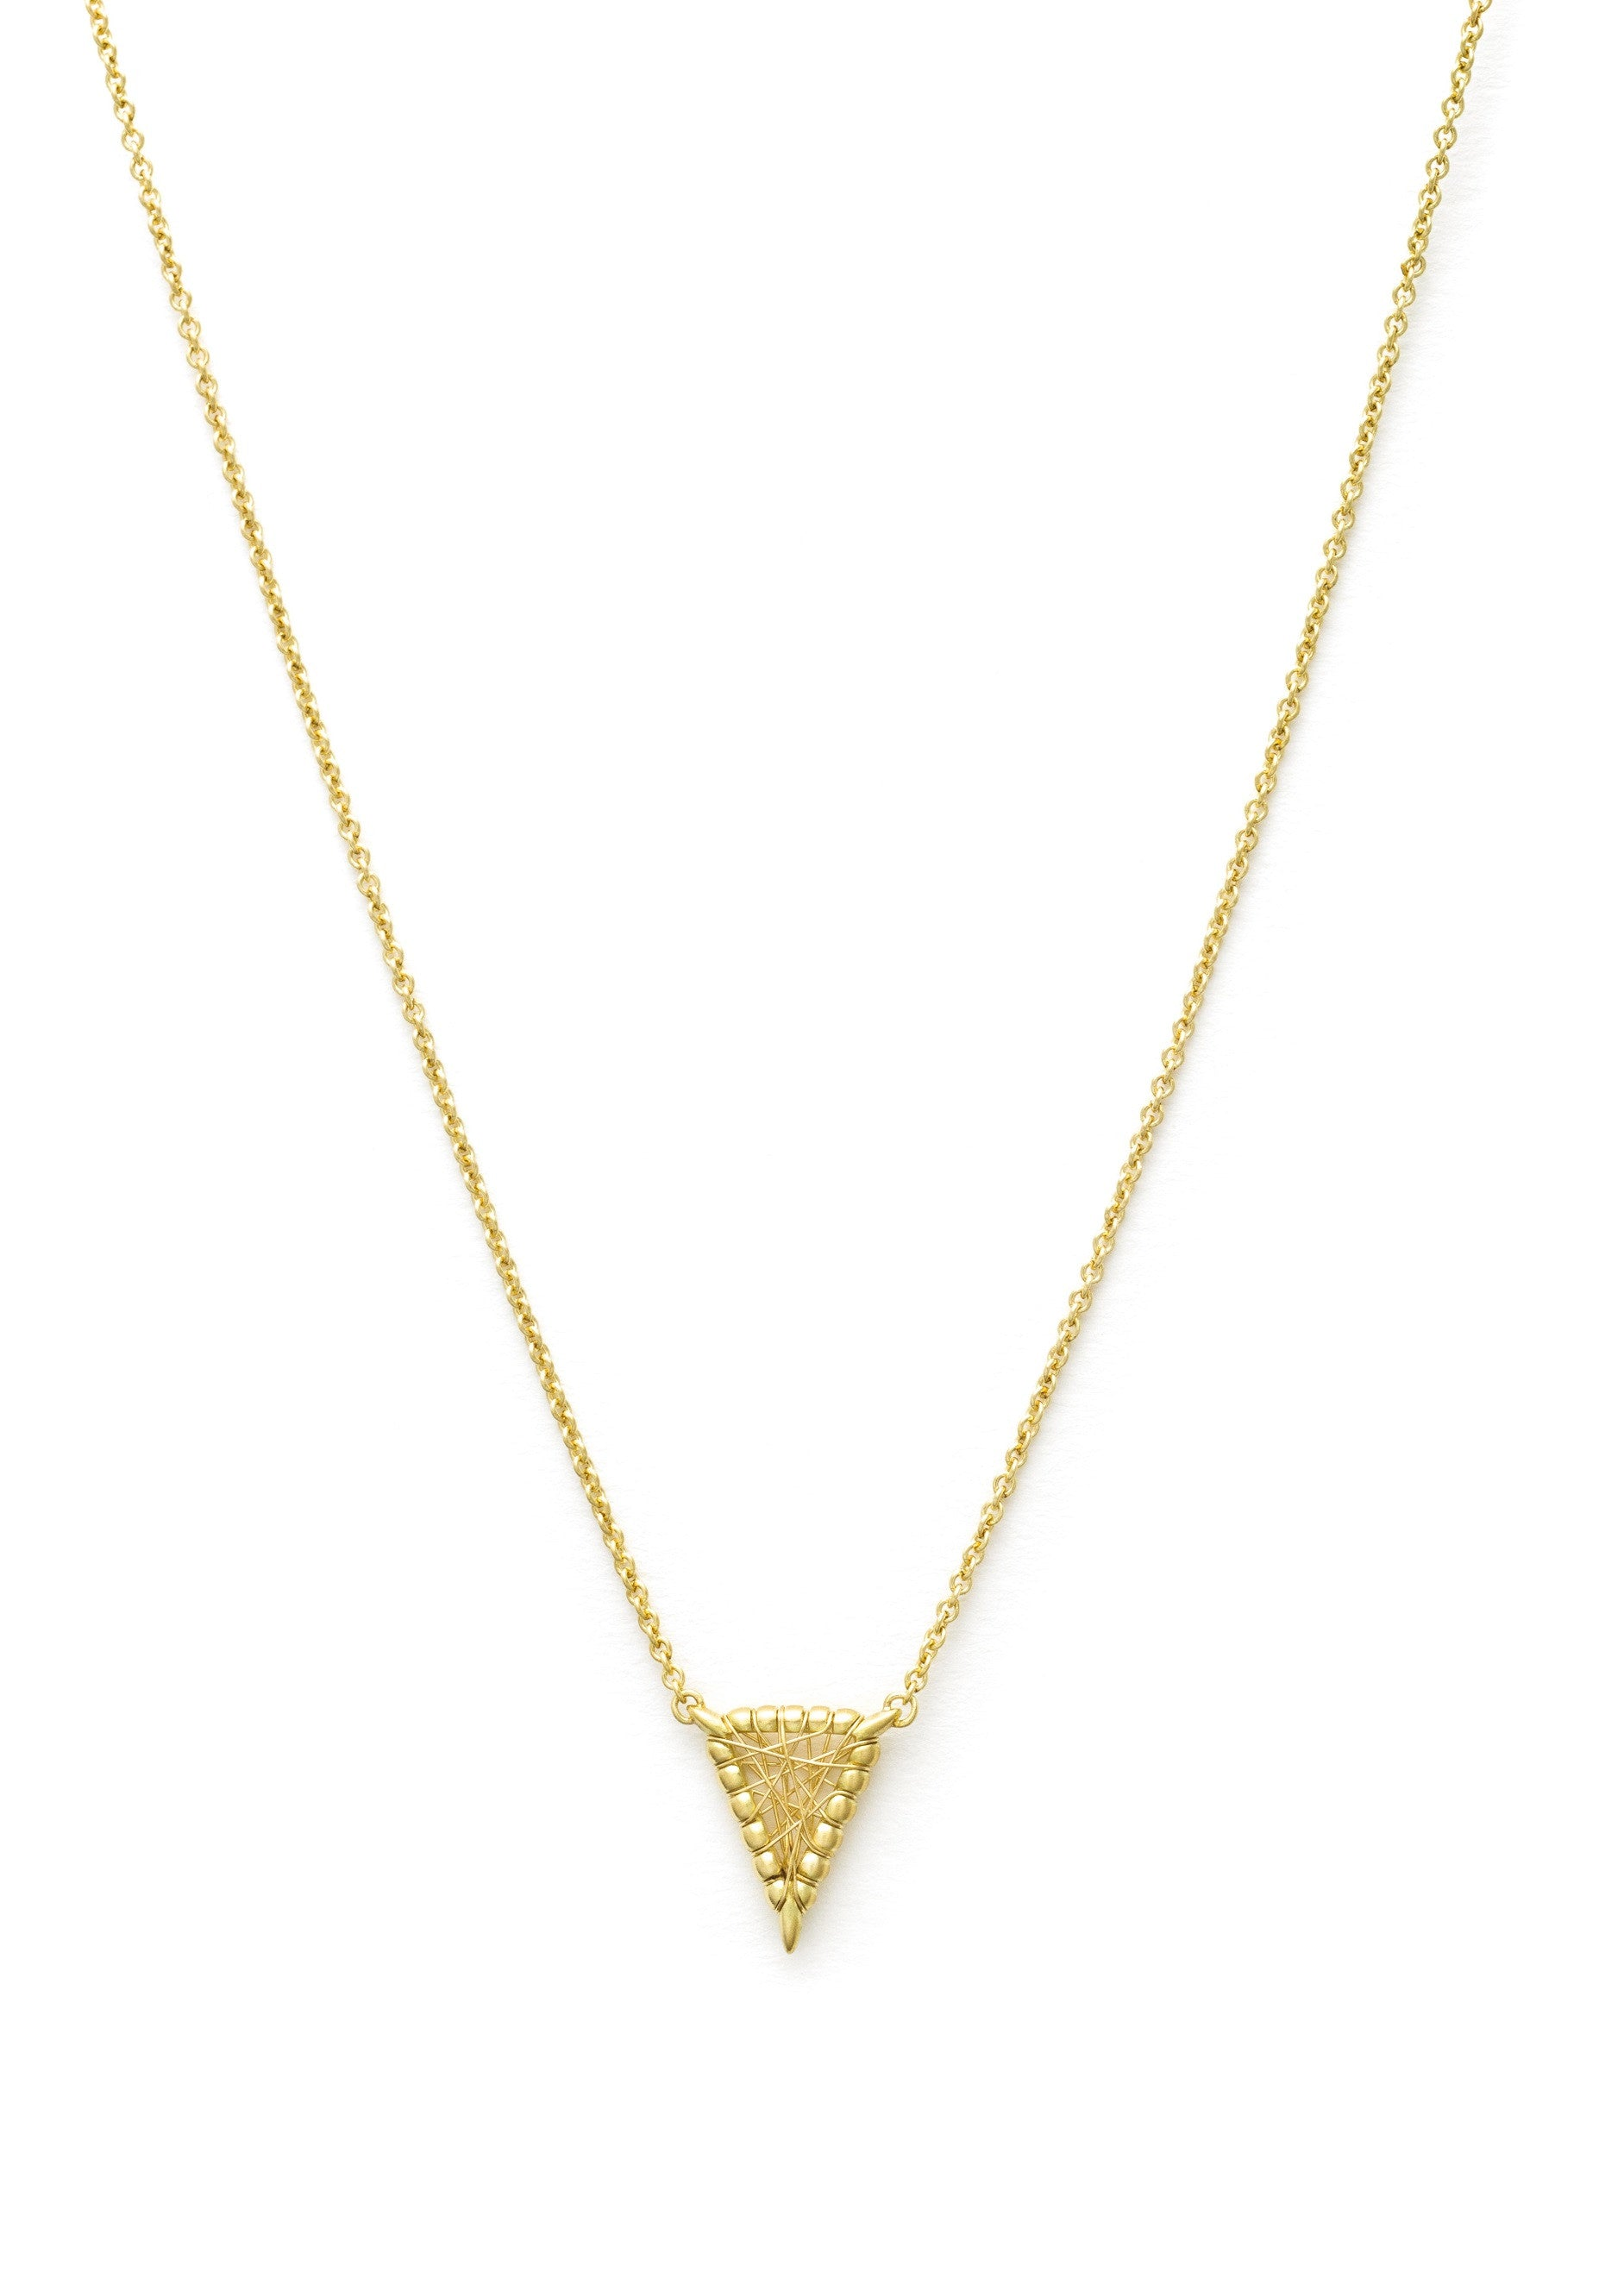 Lola Fenhirst 18K gold sybil micro necklace